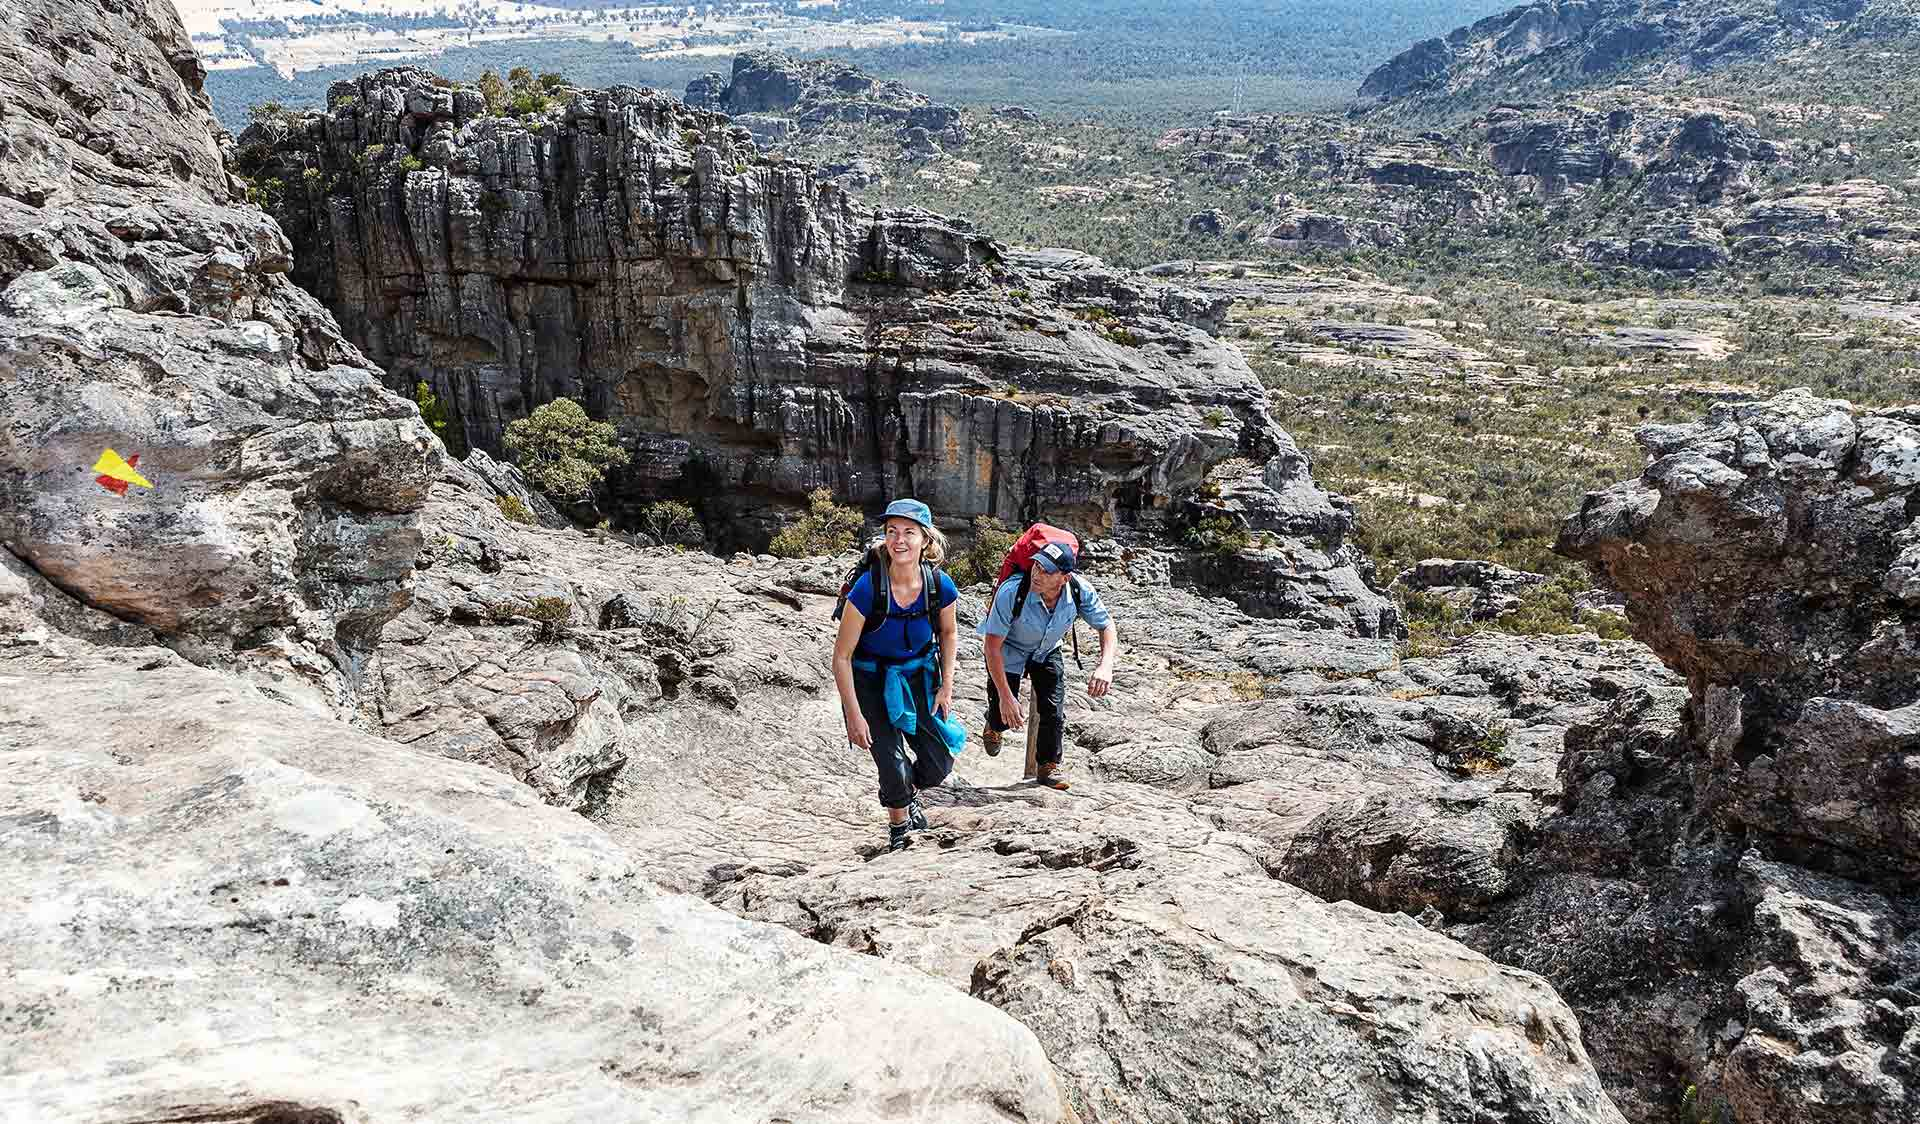 A man and woman climb up the rocky landscape of Mt Stapylton in the northern section of the Grampians National Park.